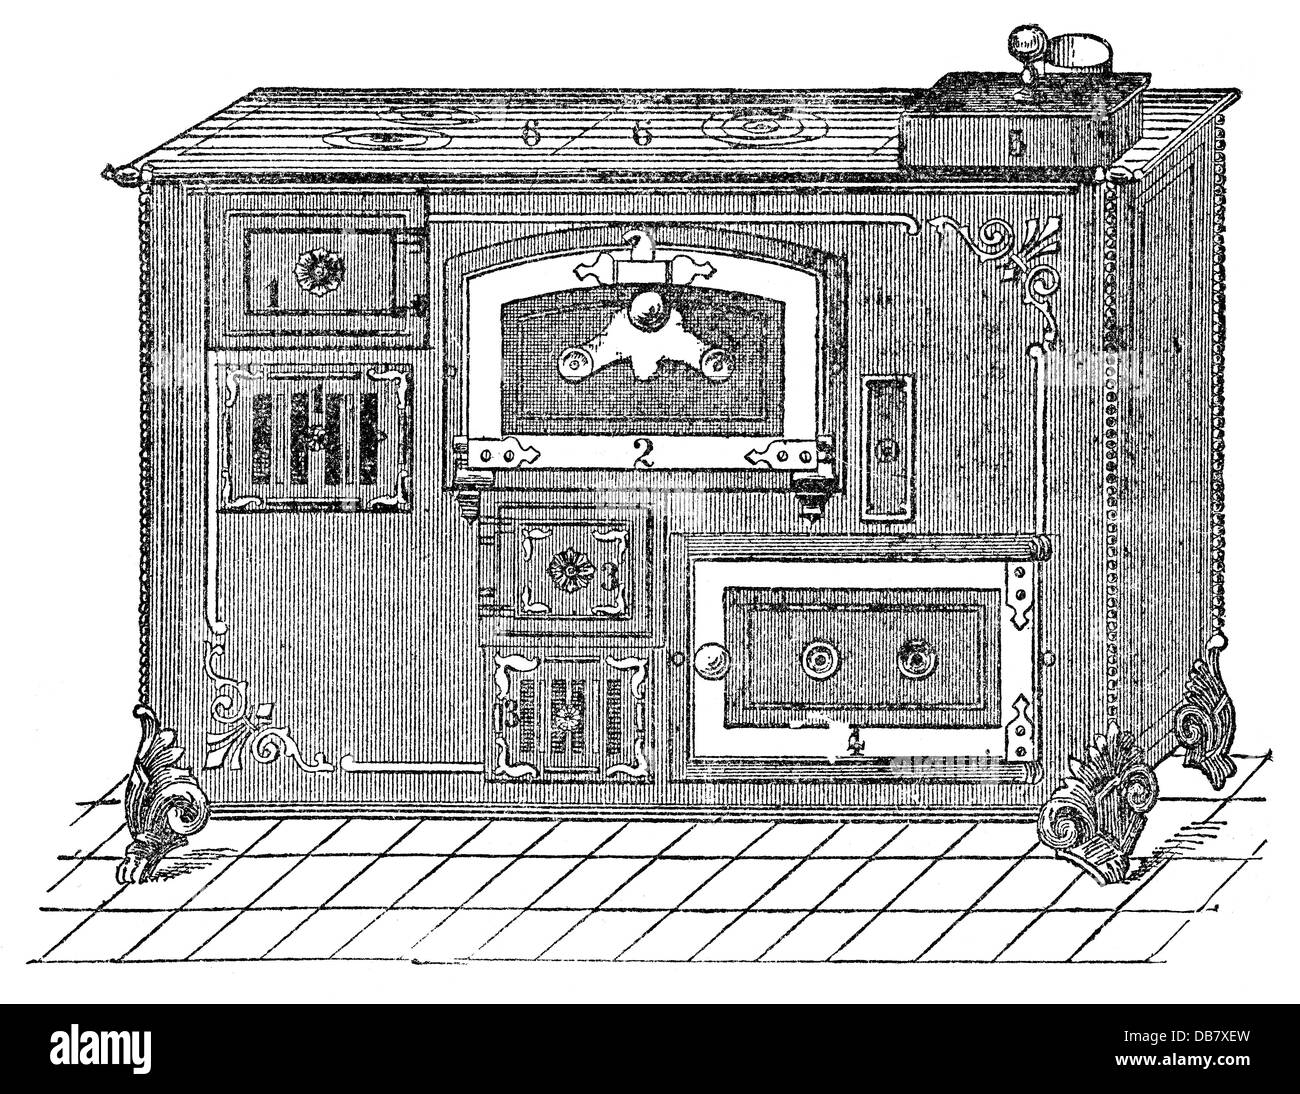 oven wood engraving stockfotos oven wood engraving bilder alamy. Black Bedroom Furniture Sets. Home Design Ideas